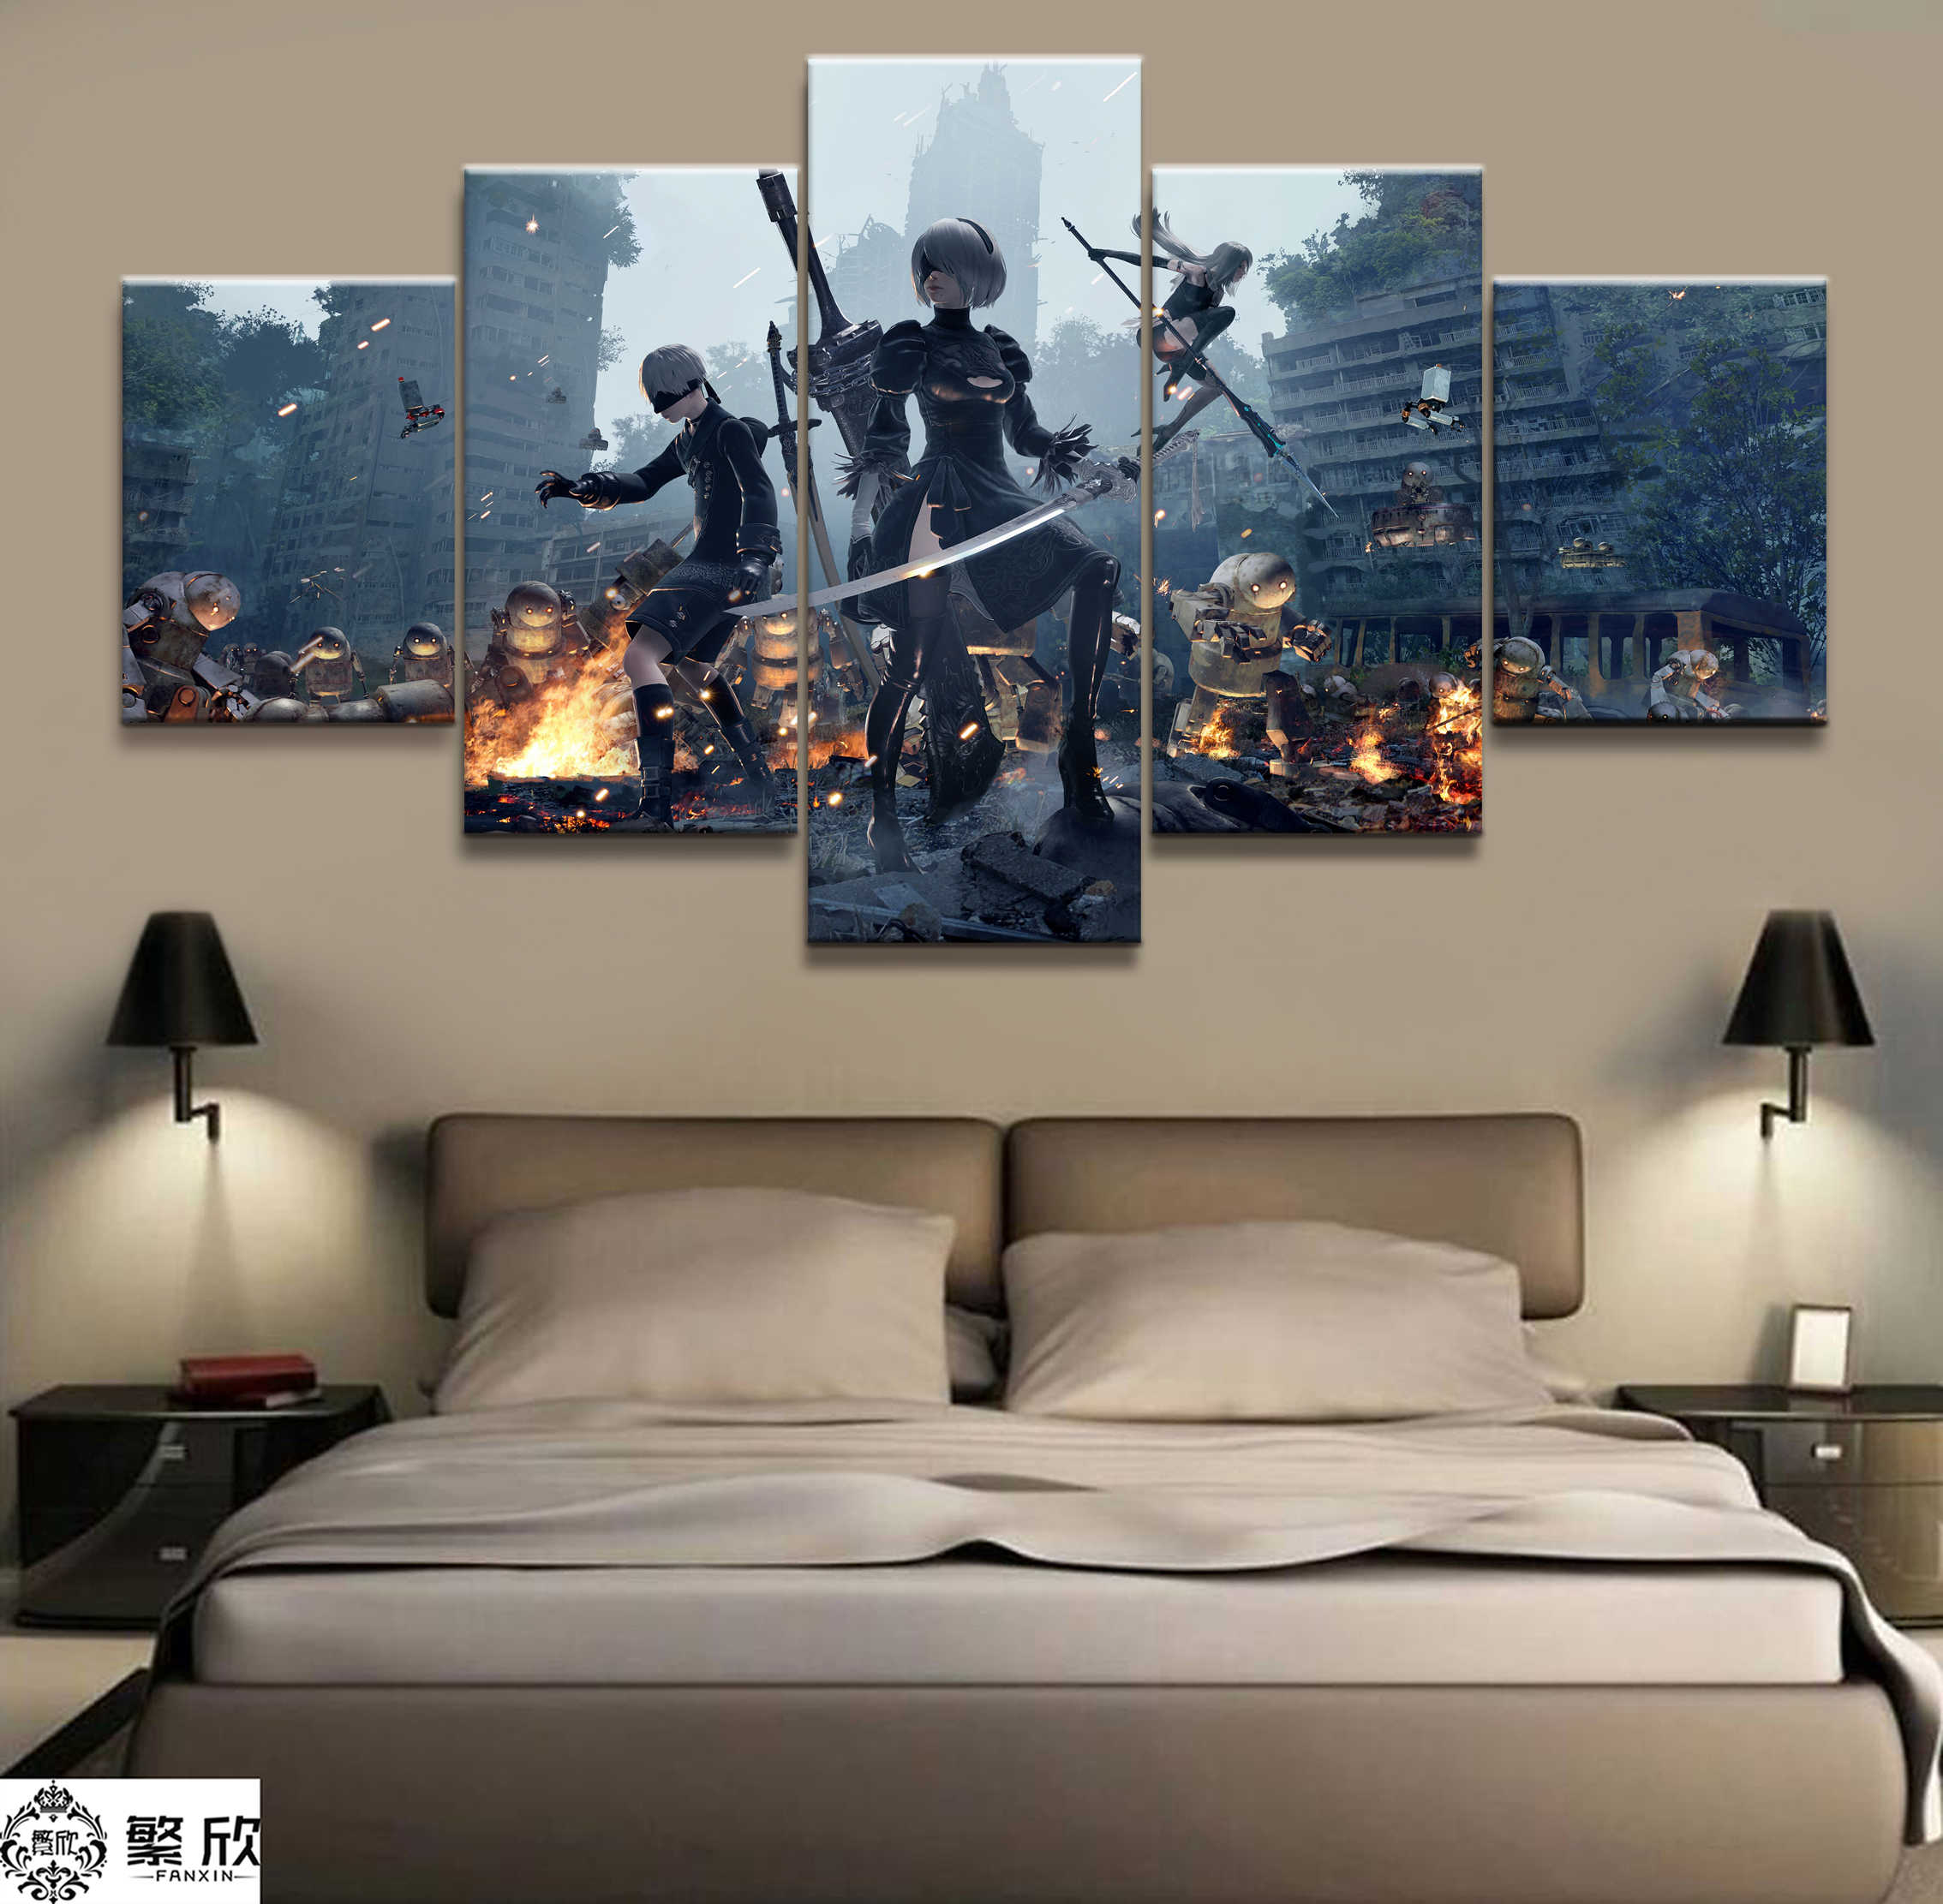 5 Panel NieR:Automata 2B Game Canvas Printed Painting For Living Room Wall Art Home Decor HD Picture Artworks Modern Poster